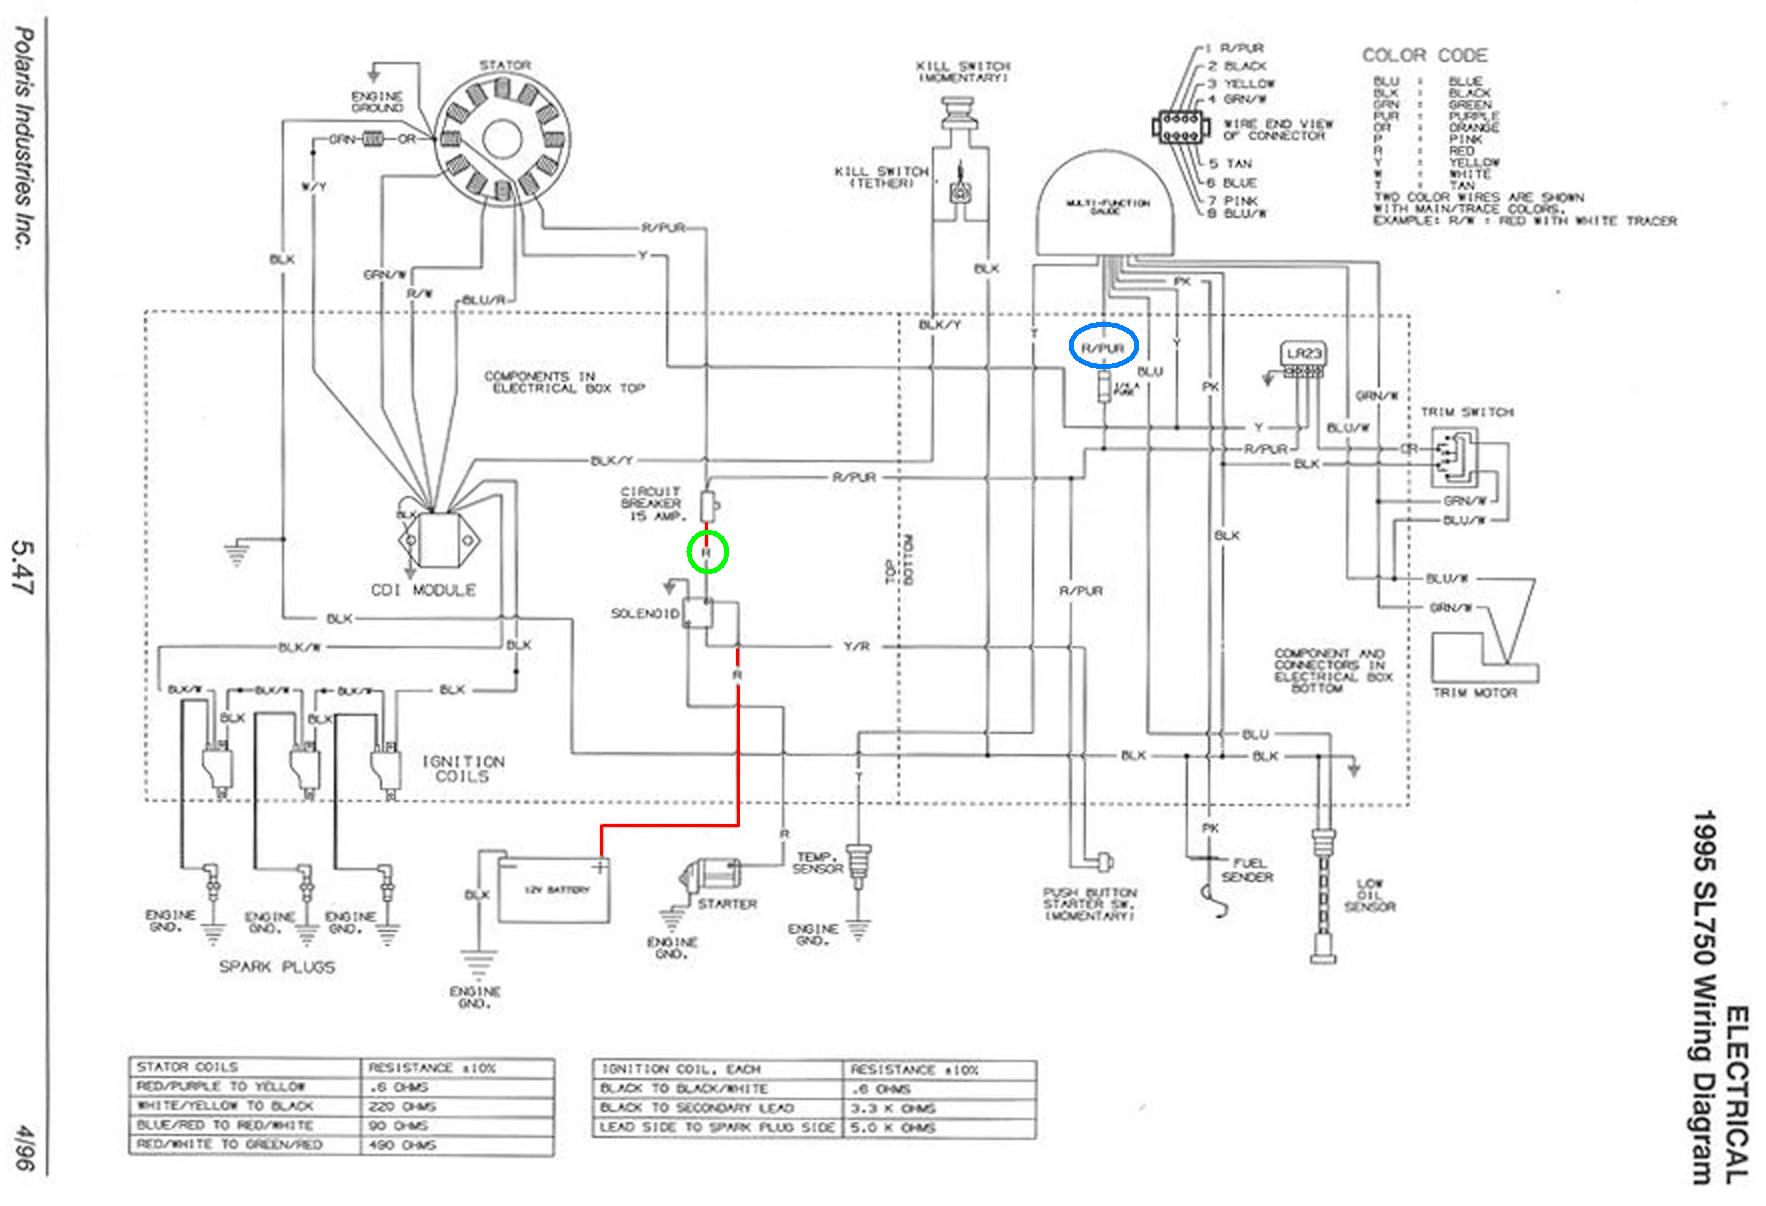 1999 Yamaha R6 Wiring Diagram also Polaris 425 Wiring Schematic additionally Kvt 512 Wiring Diagram also Clarion Head Unit Wiring Diagram as well Nordyne Electric Furnace Wiring Diagram. on ford radio wire diagram crutchfield